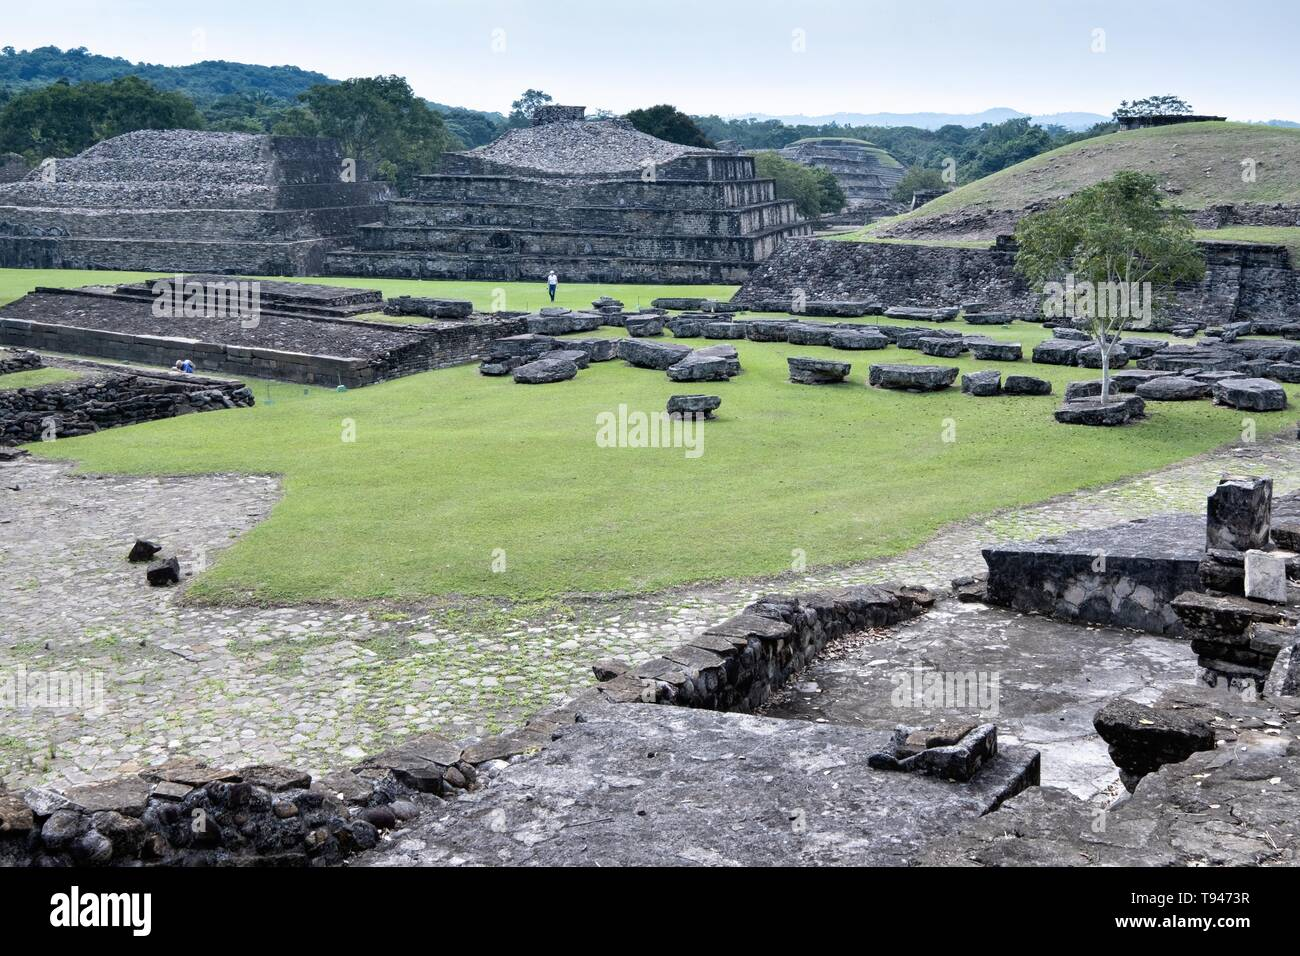 Overview of the Mesoamerica North Ballcourts at the pre-Columbian archeological complex of El Tajin in Tajin, Veracruz, Mexico. El Tajín flourished from 600 to 1200 CE and during this time numerous temples, palaces, ballcourts, and pyramids were built by the Totonac people and is one of the largest and most important cities of the Classic era of Mesoamerica. - Stock Image